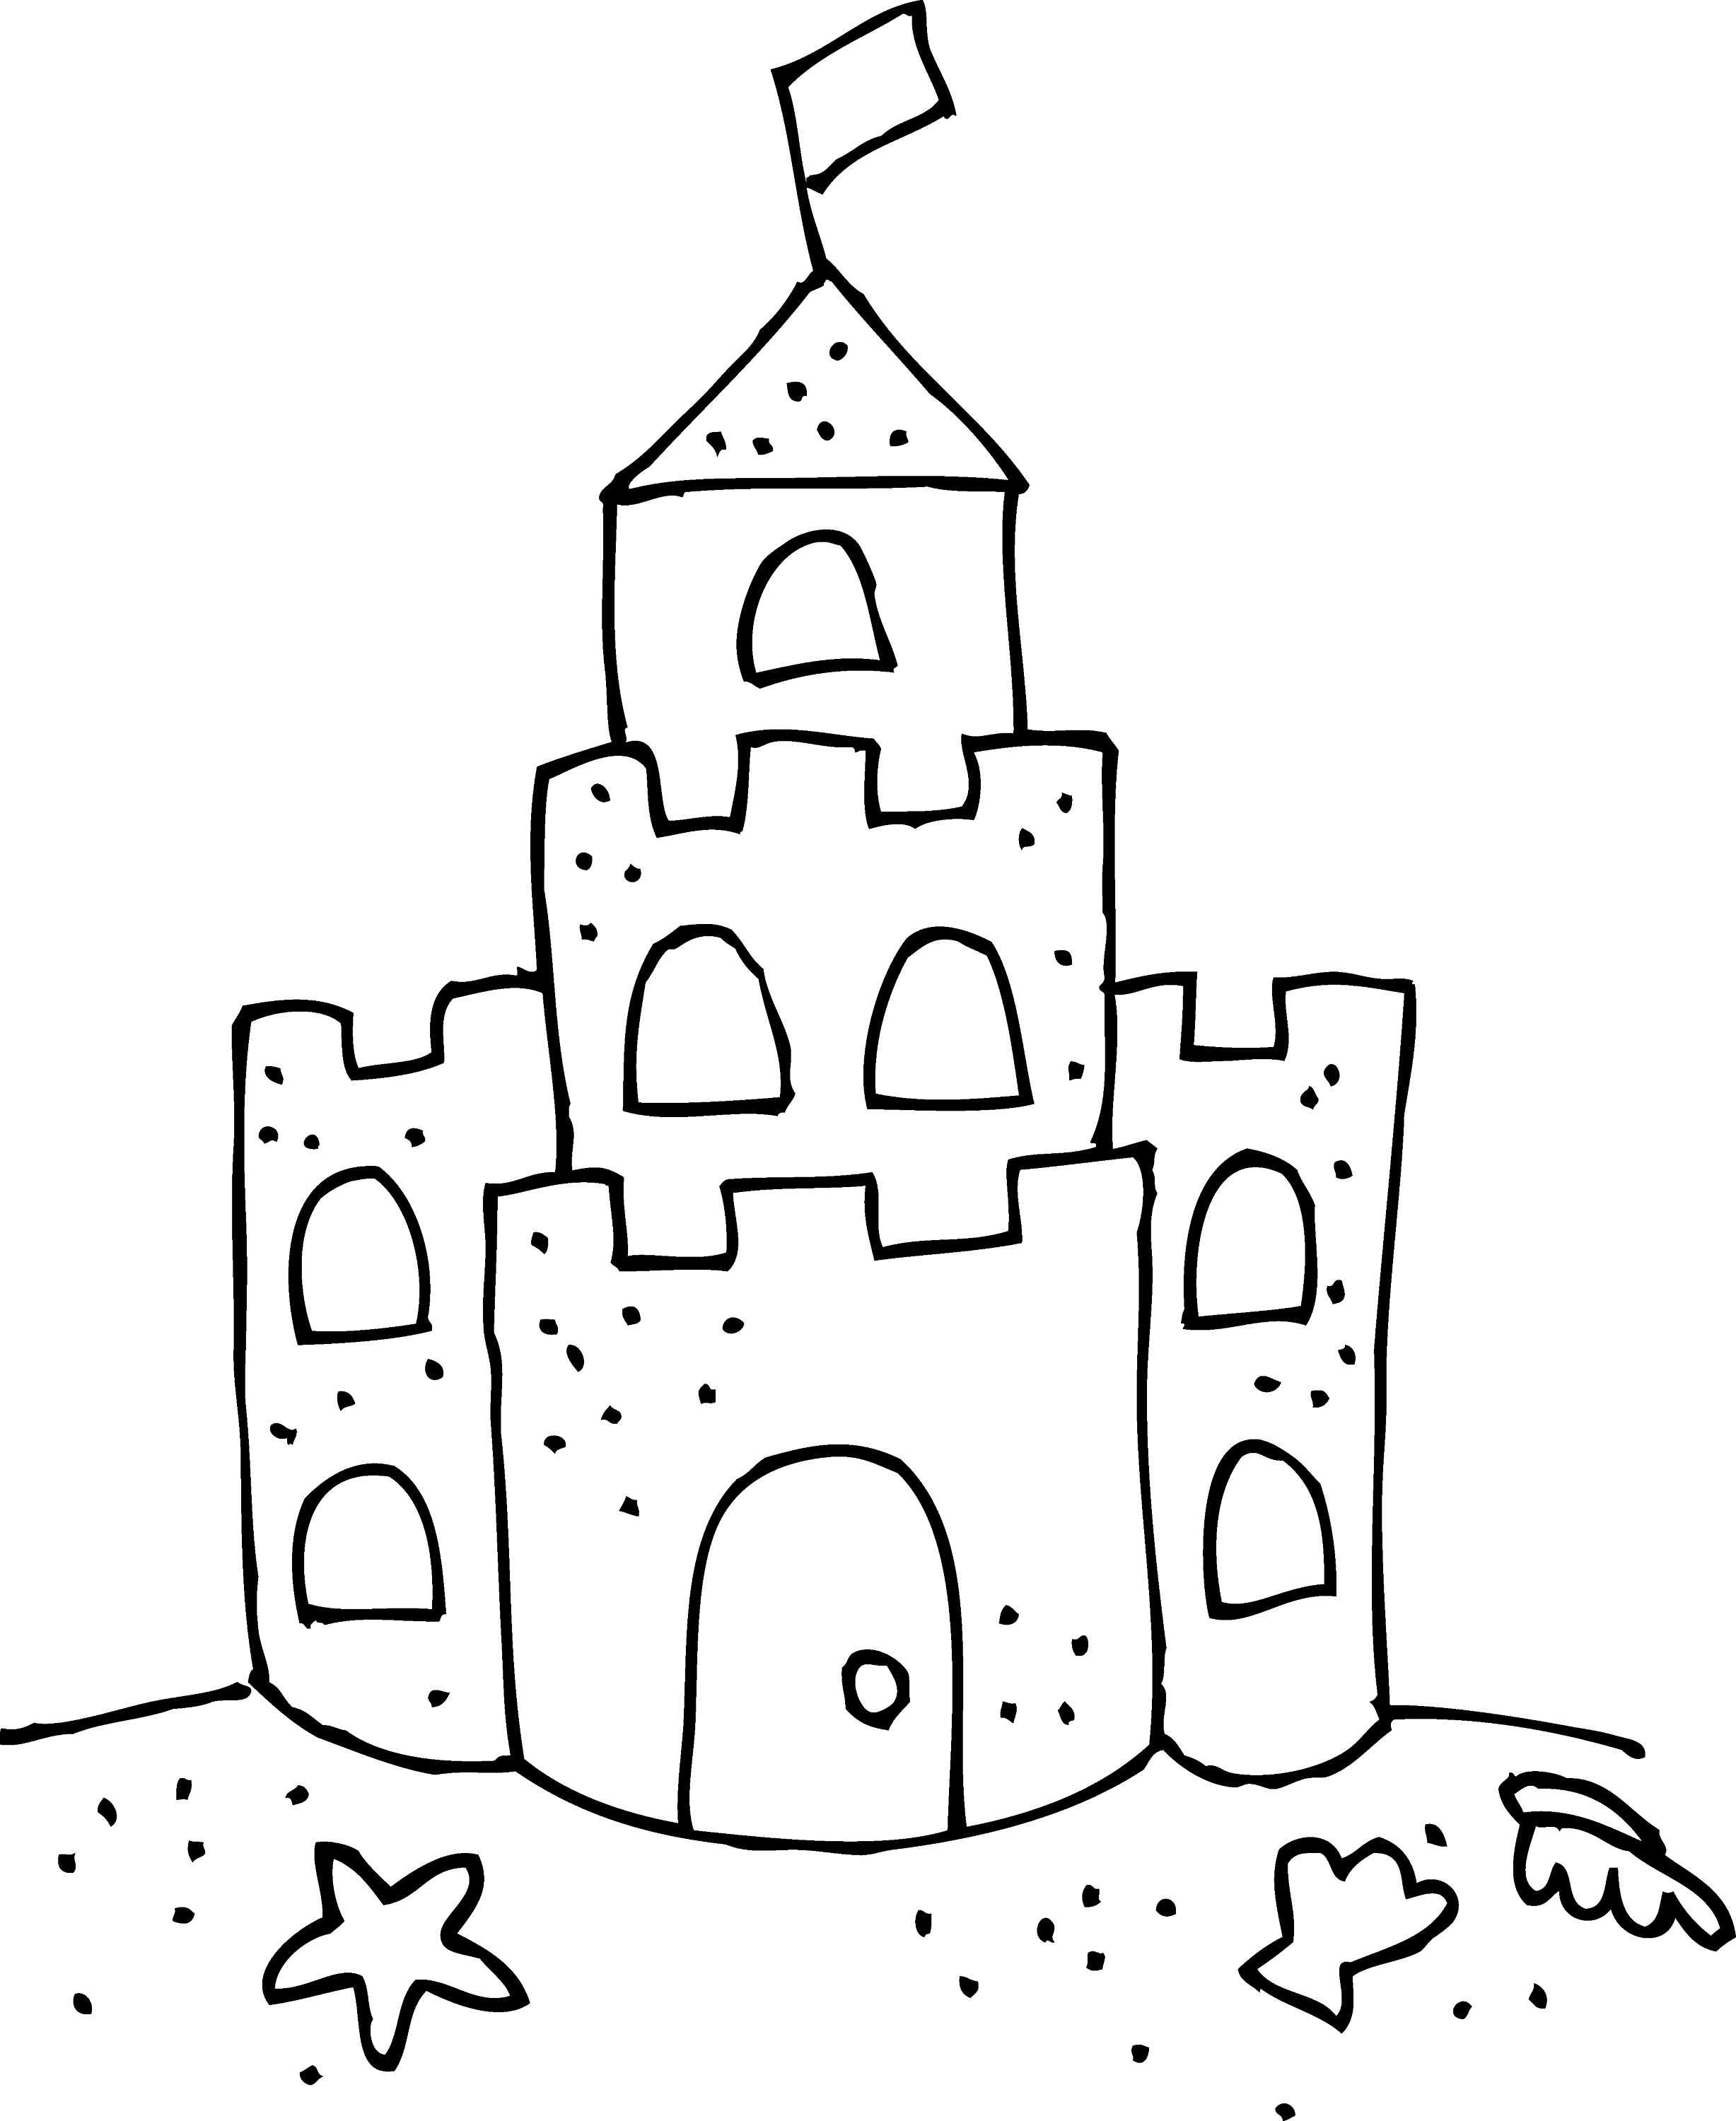 Printable coloring pages sand castle - Cute Sand Castle Coloring Page